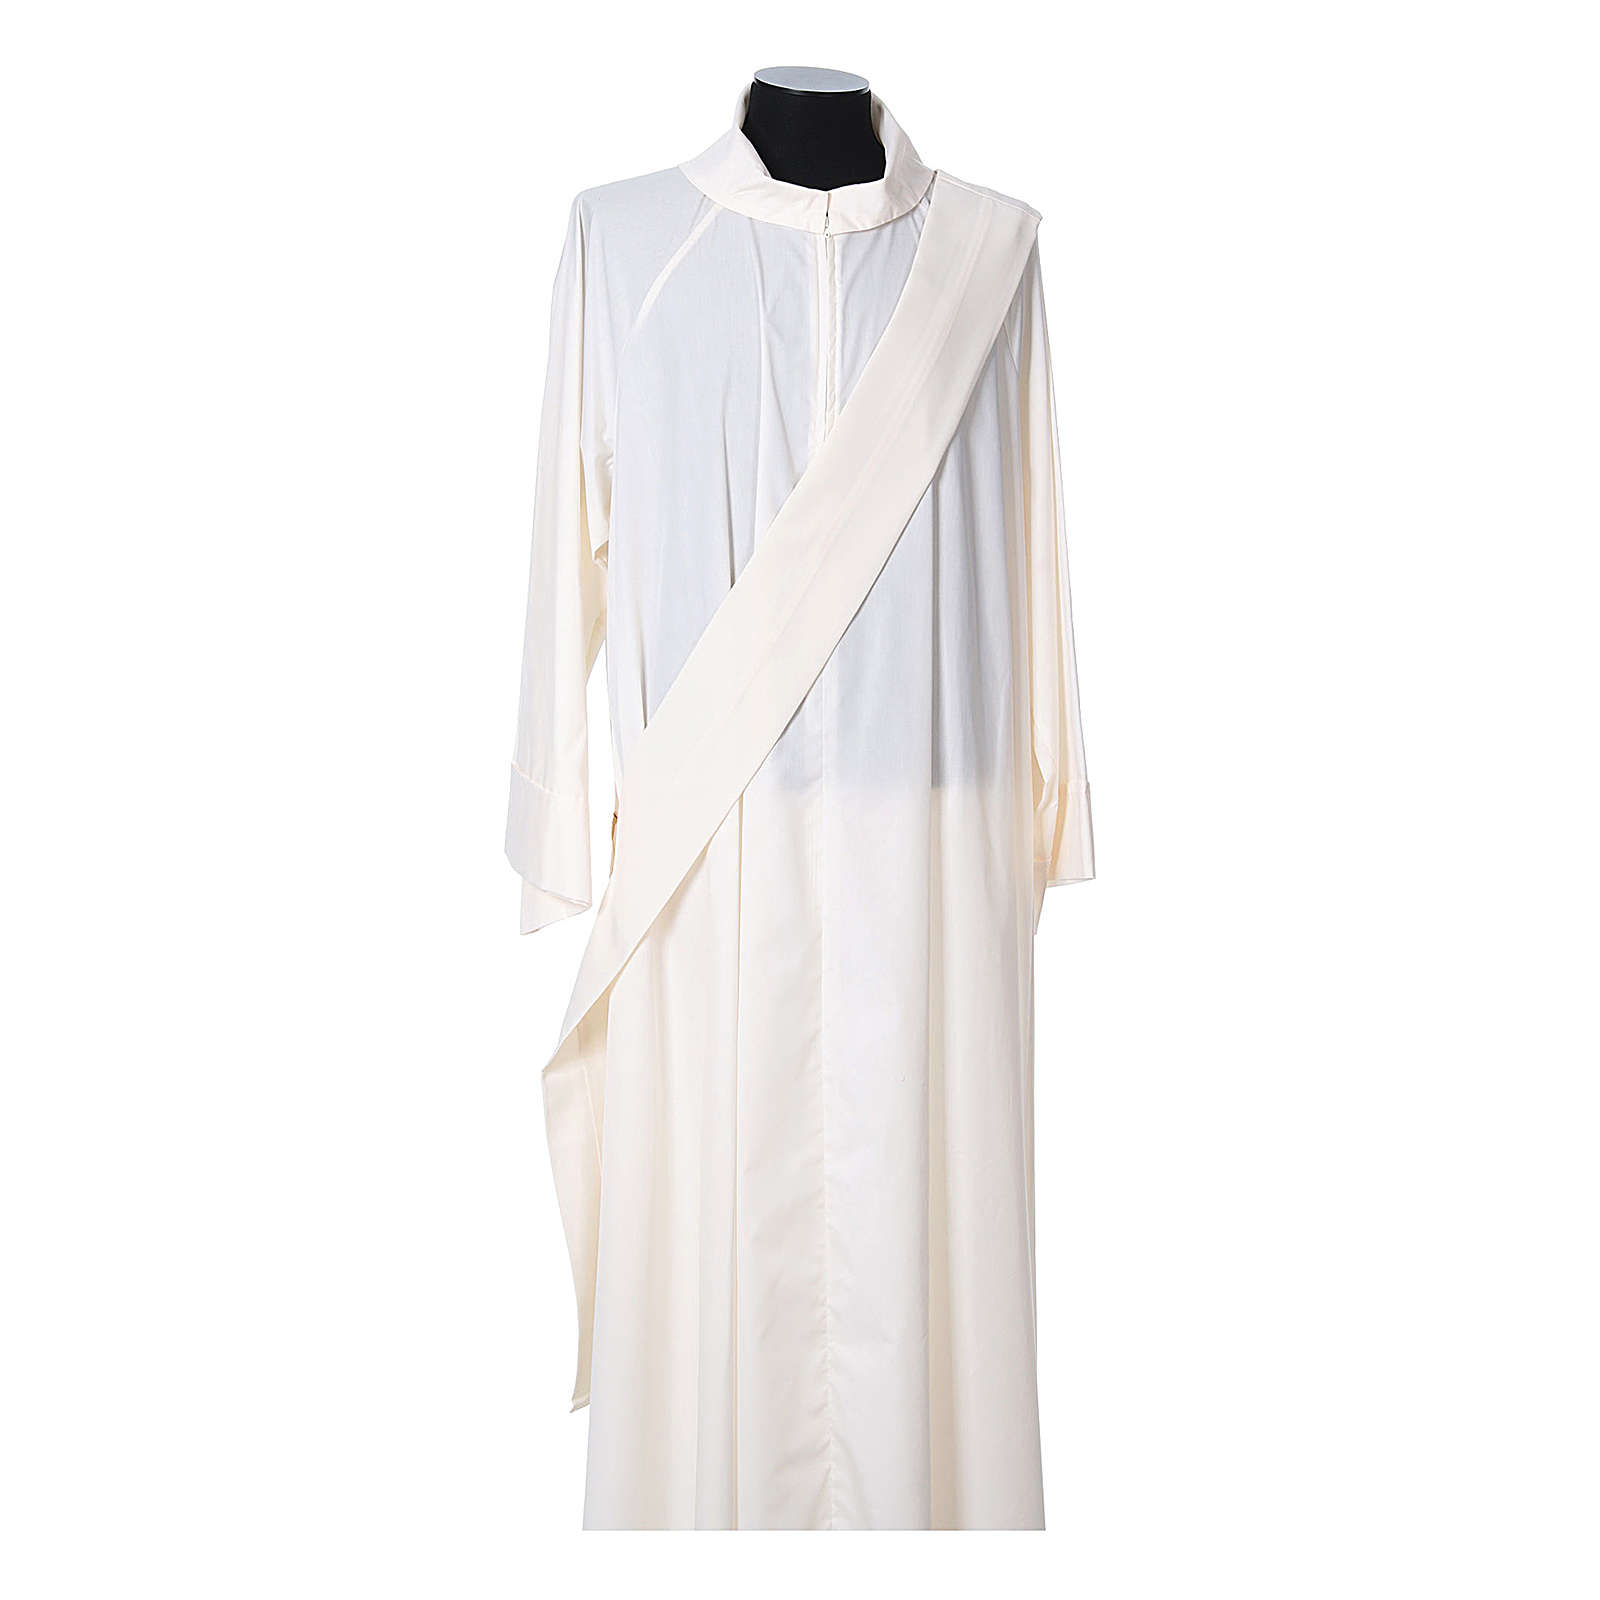 Ultralight Dalmatic with Peace and lilies embroidery on front and back, Vatican fabric 100% polyester 4